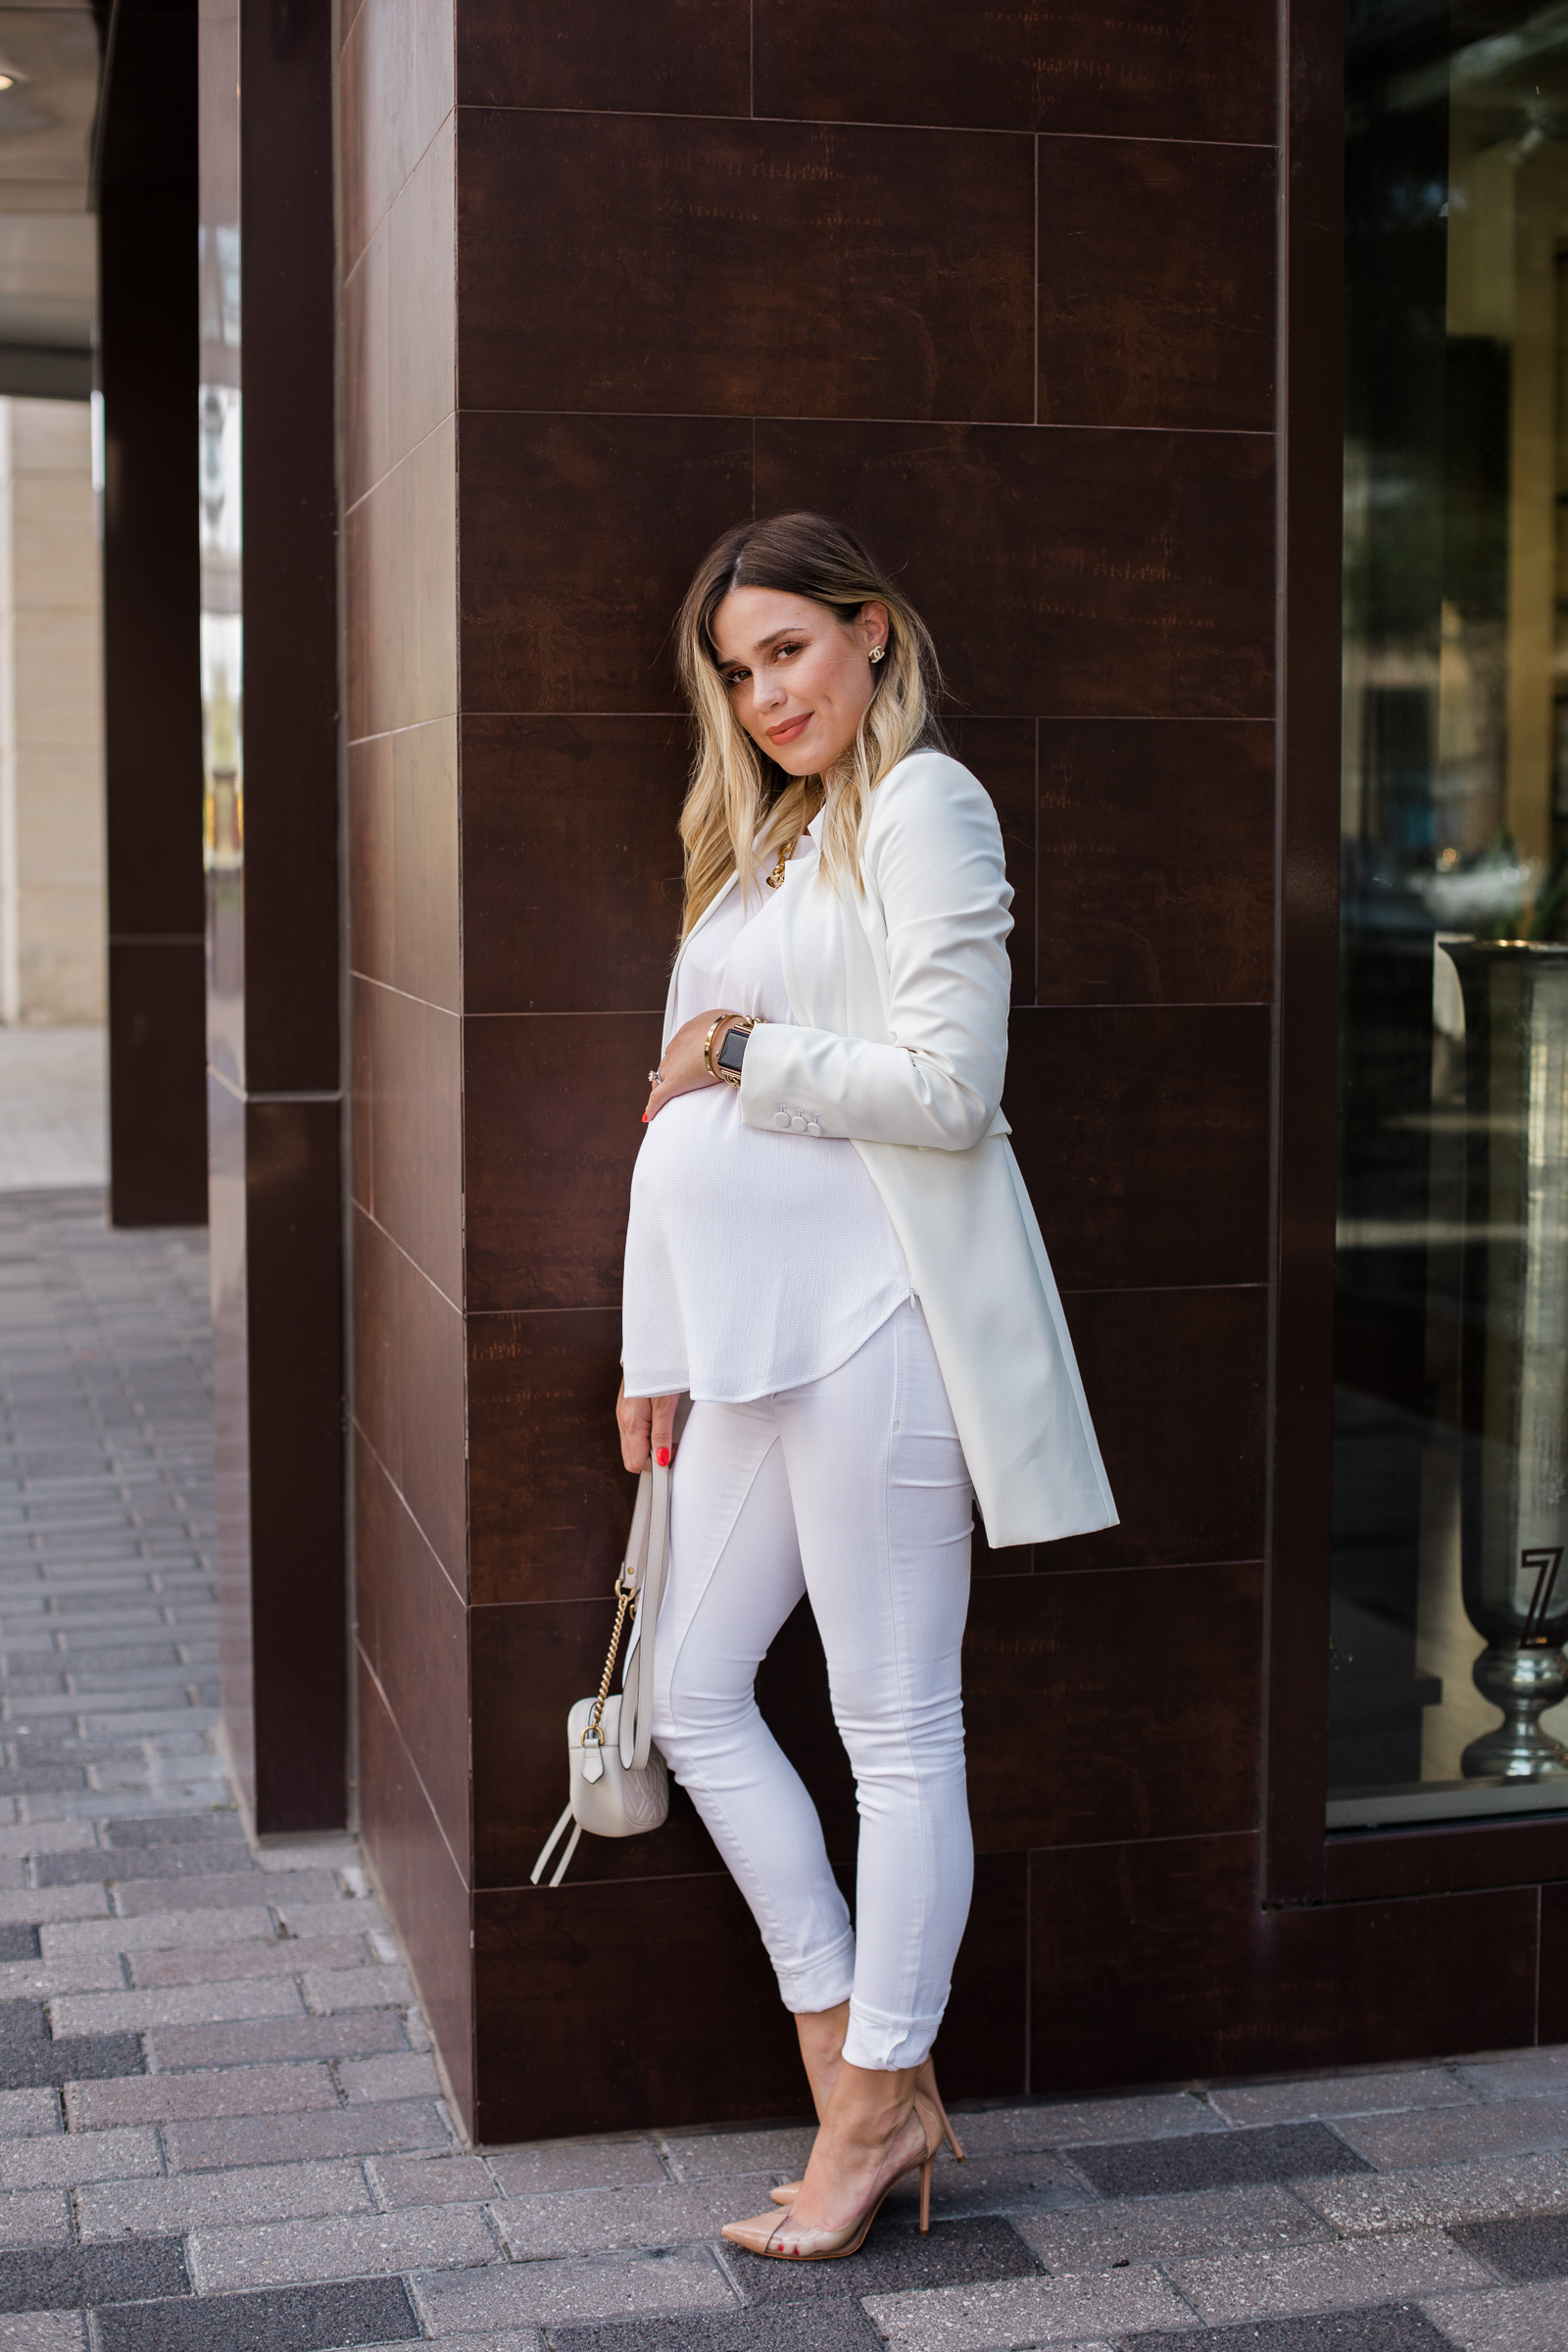 Houston fashion blogger Elly Brown wears an all white outfit with see through heel pumps from Schutz